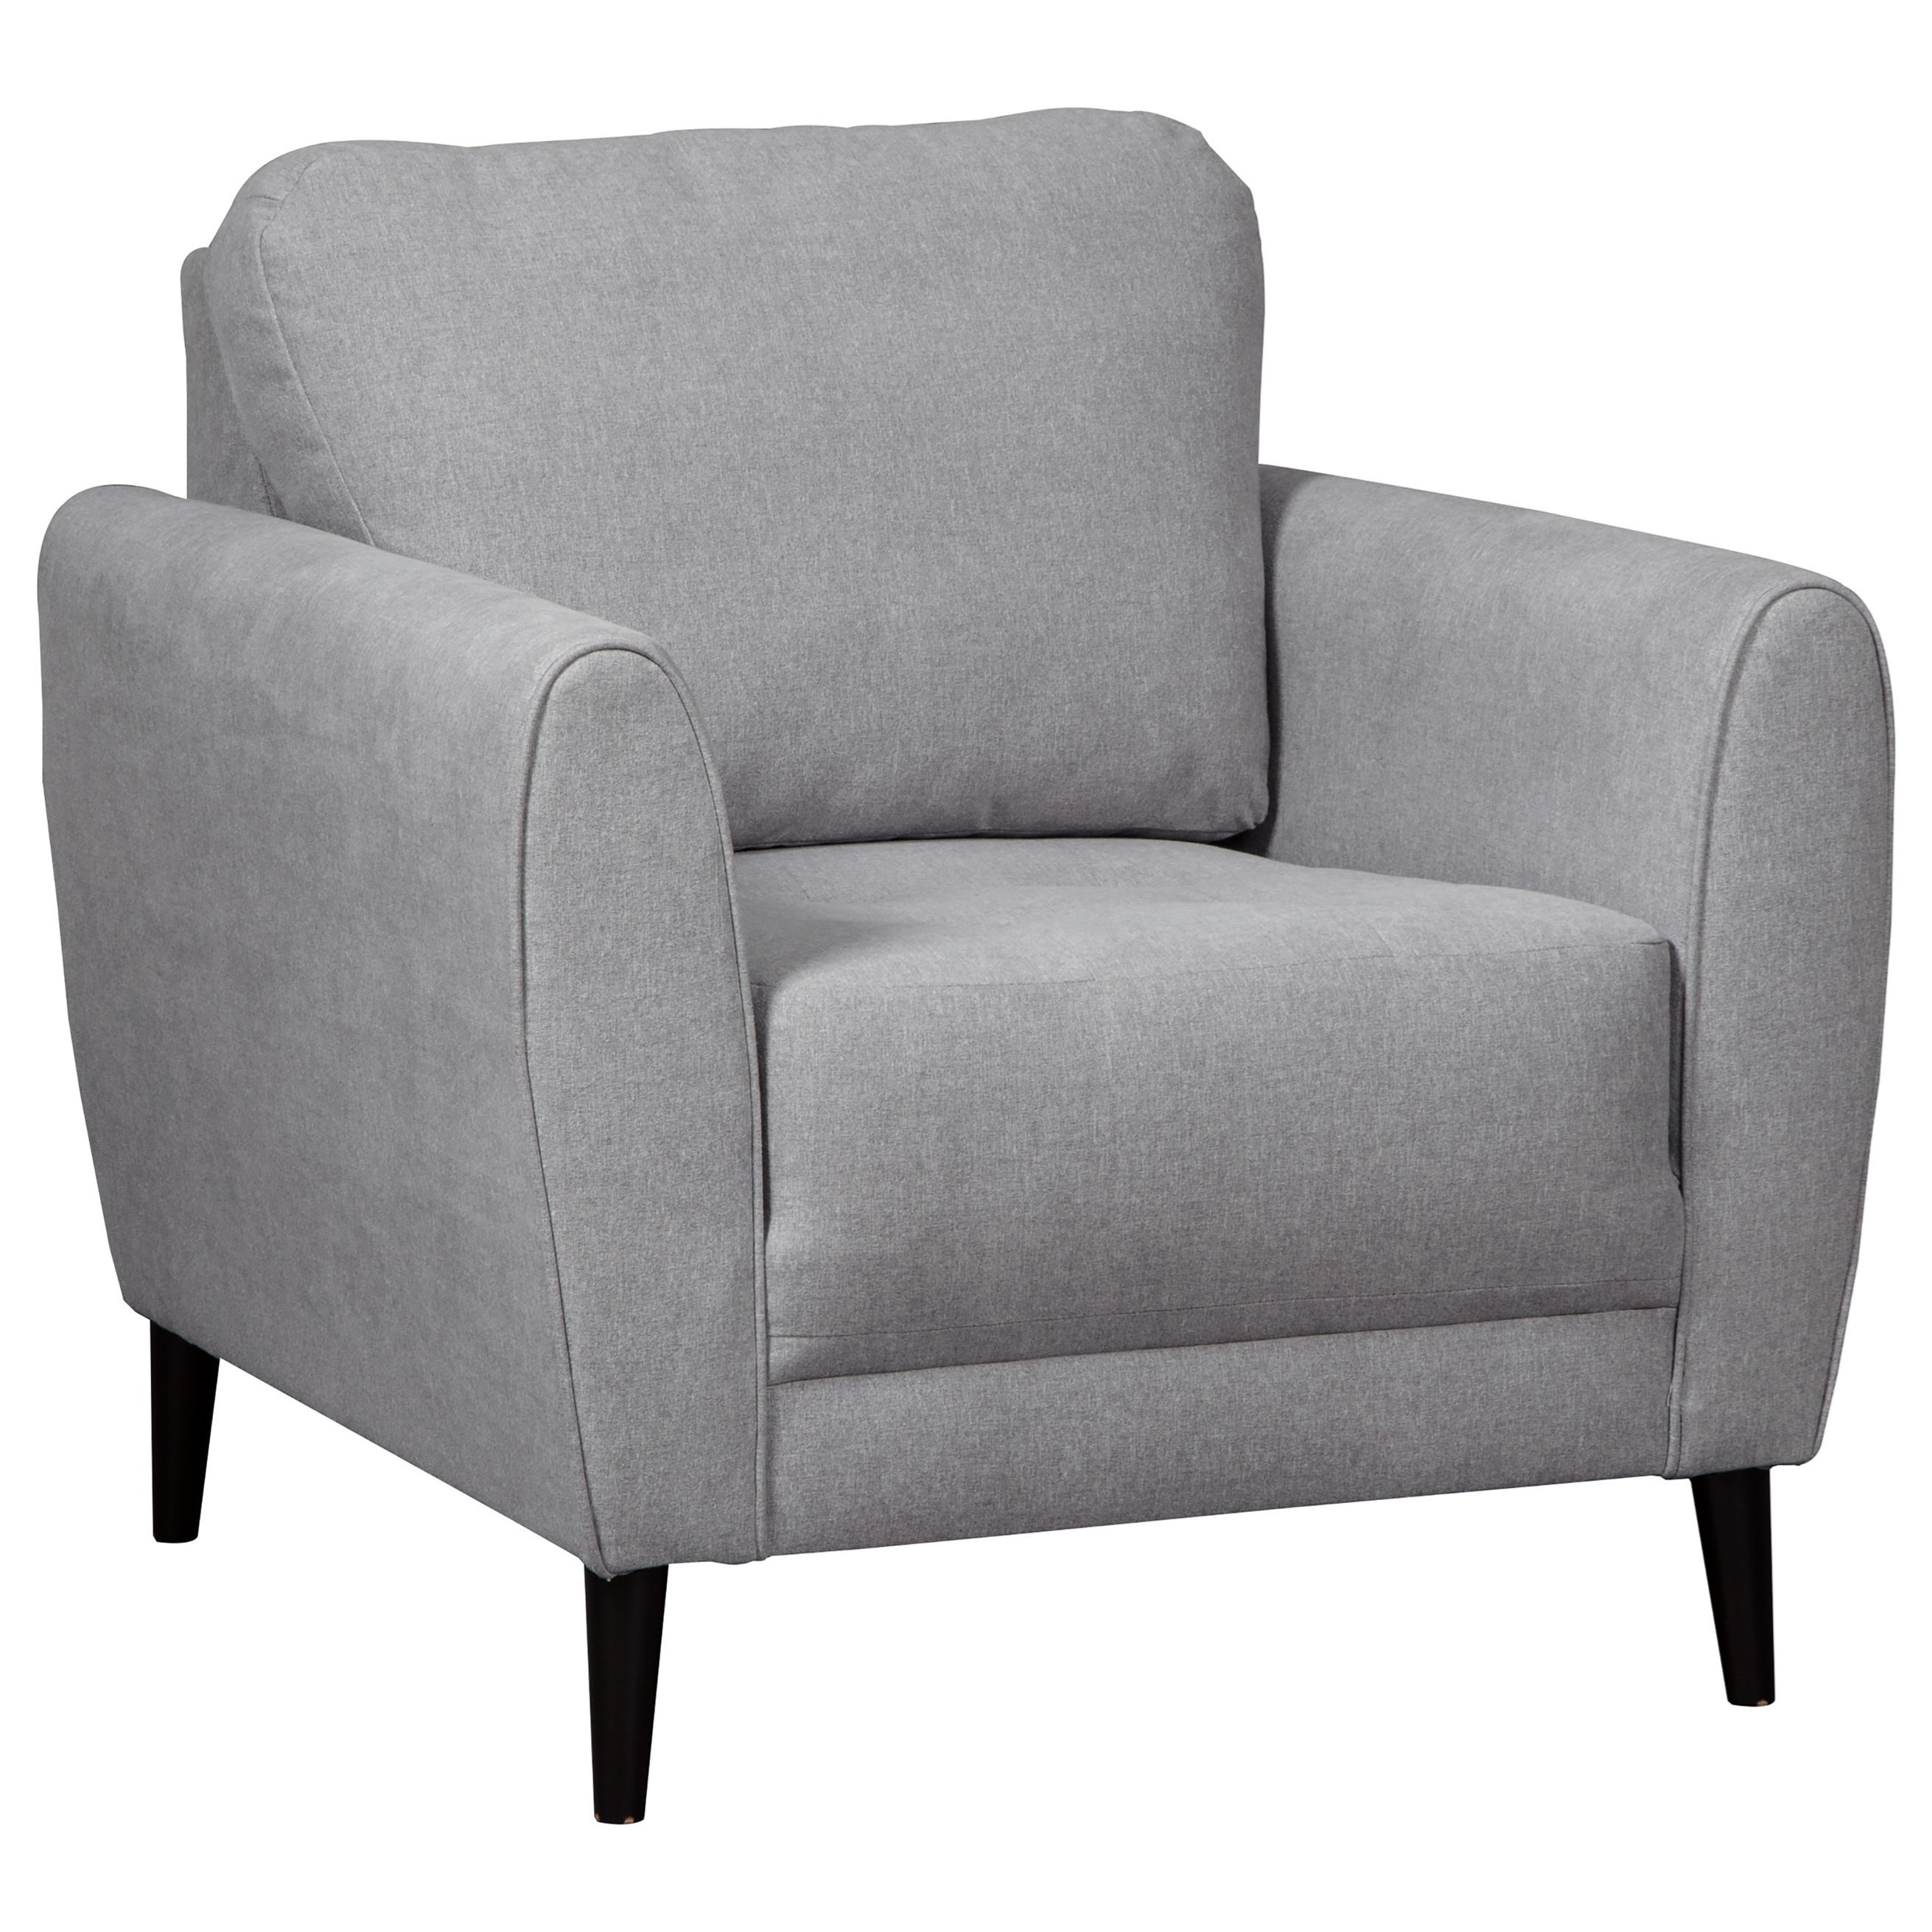 Cardello Chair by Signature Design at Fisher Home Furnishings